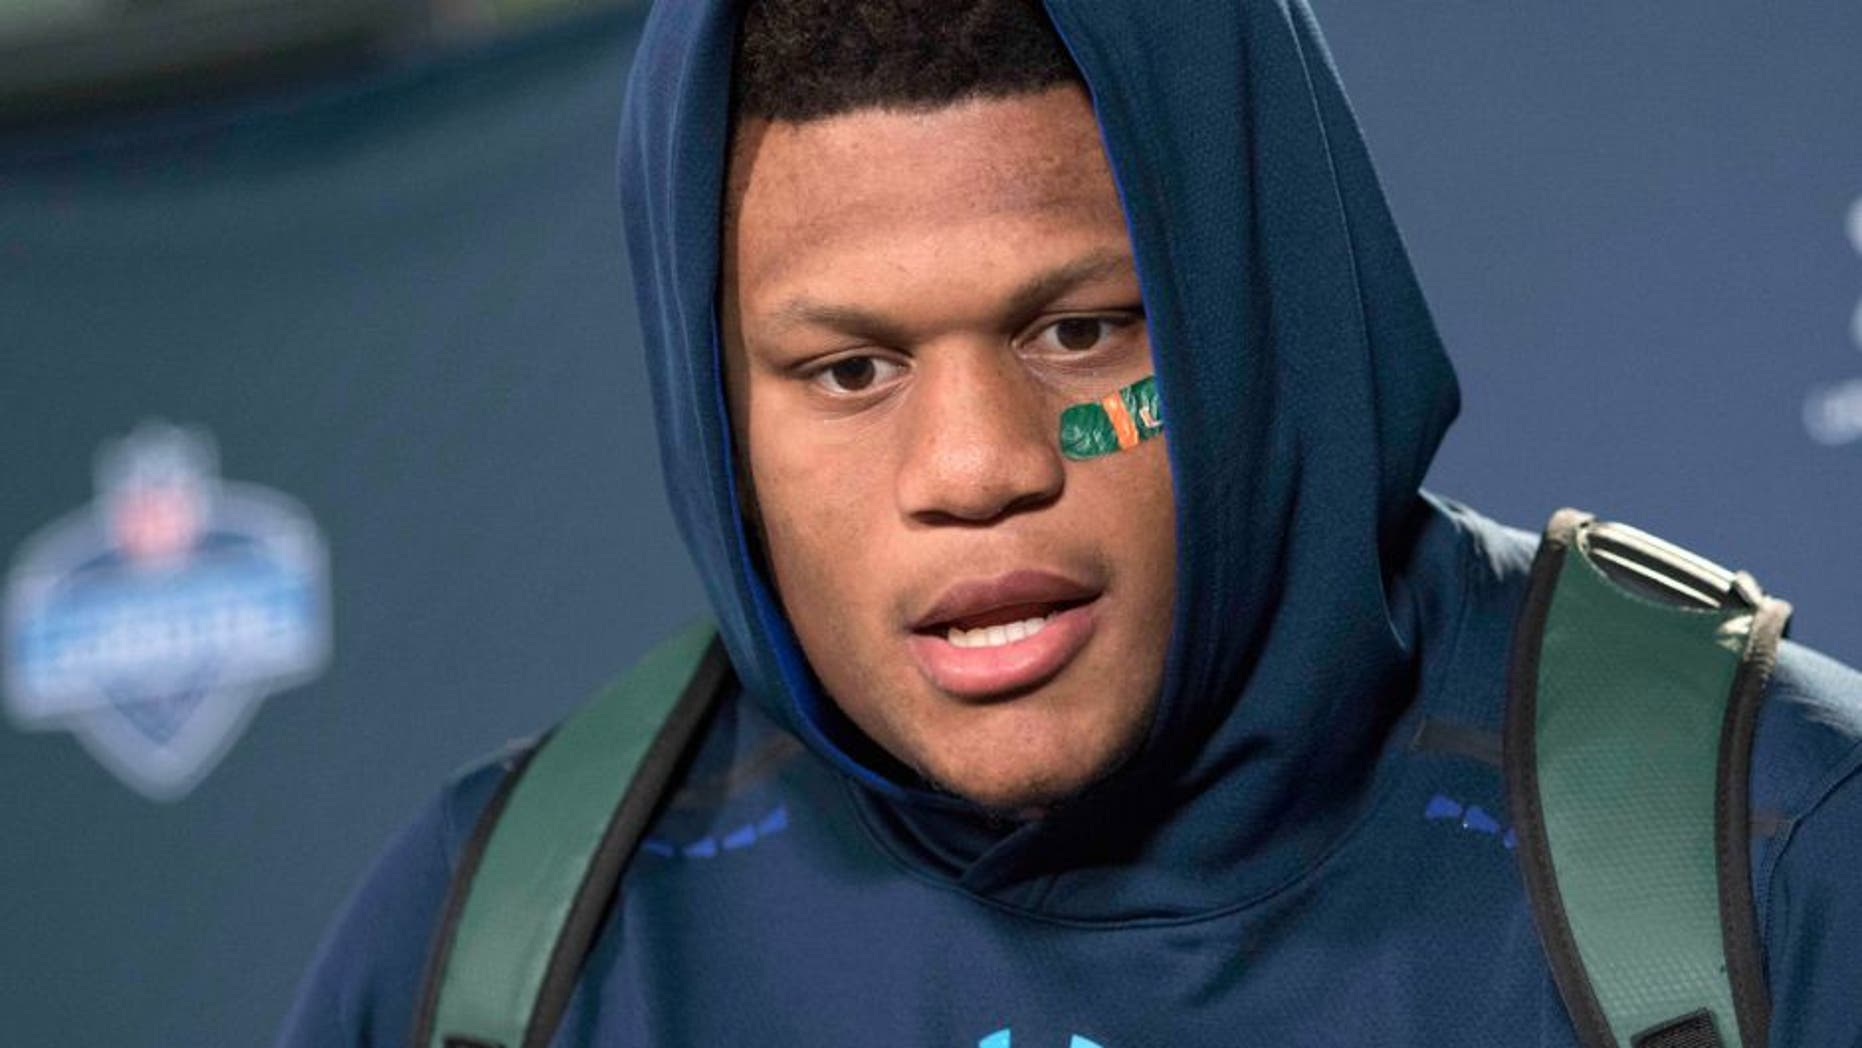 Feb 20, 2015; Indianapolis, IN, USA; Miami offensive lineman Ereck Flowers speaks to the media at the 2015 NFL Combine at Lucas Oil Stadium. Mandatory Credit: Trevor Ruszkowski-USA TODAY Sports